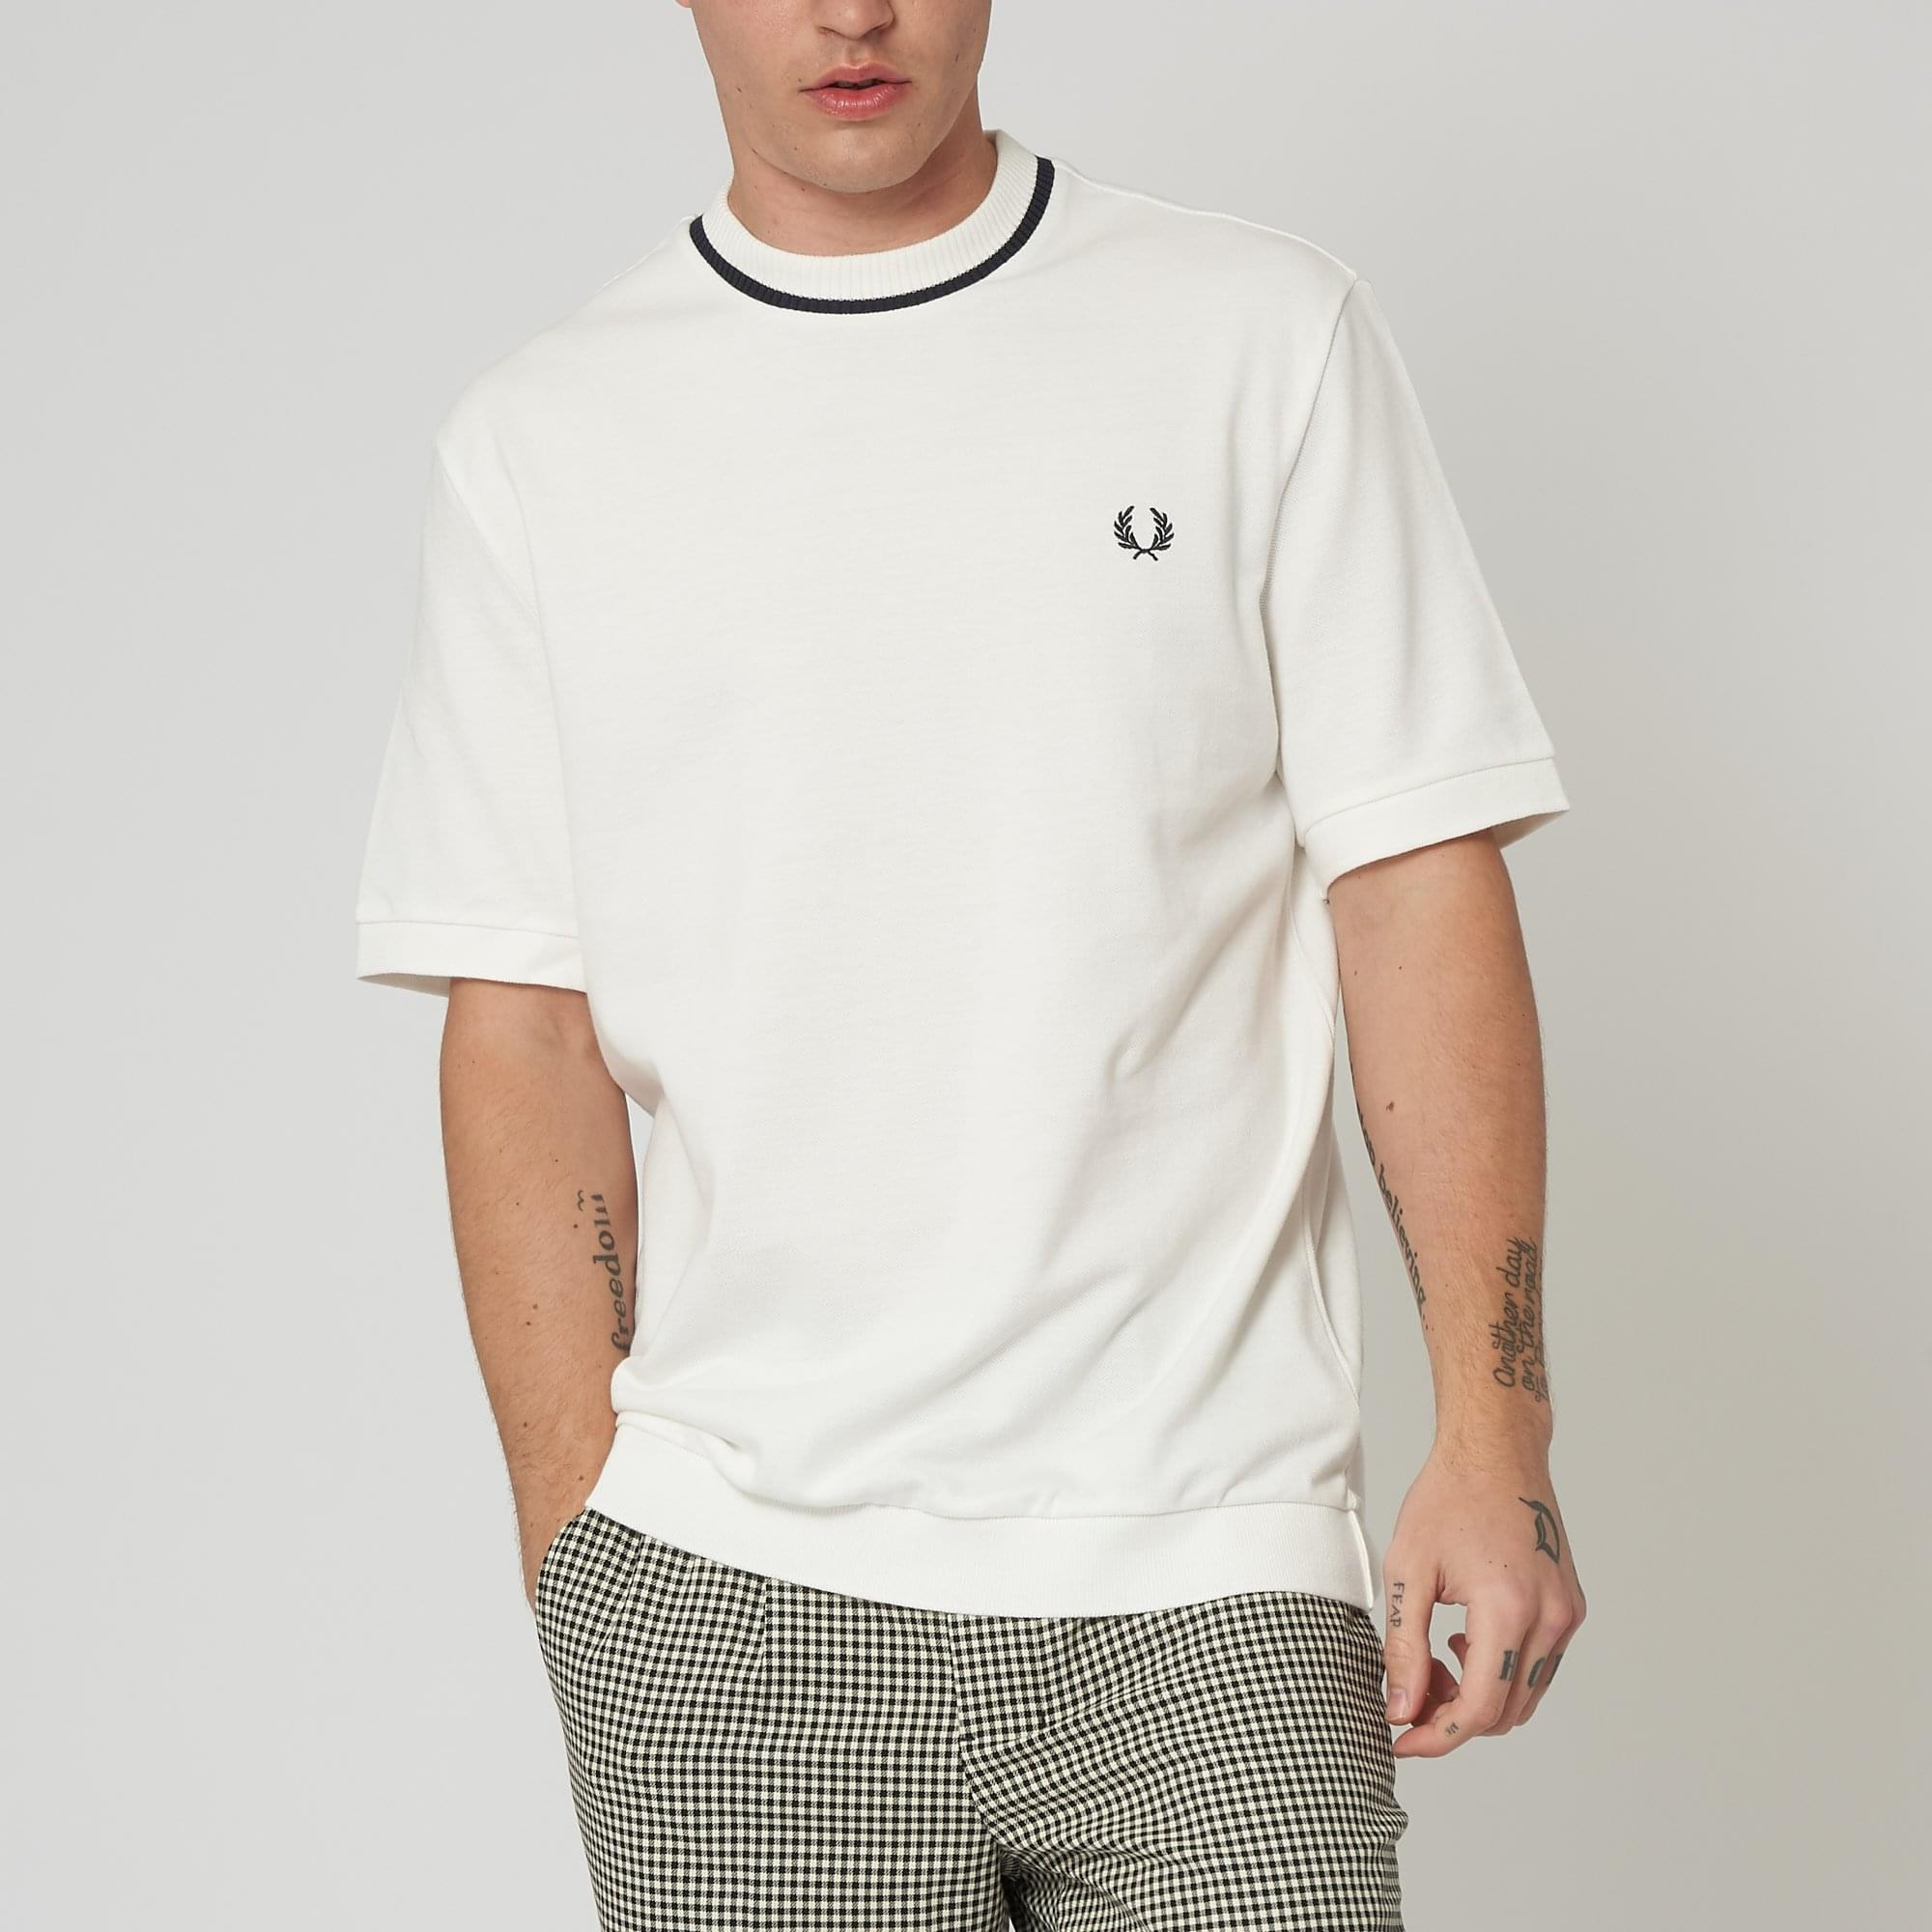 d38b91fe8 Fred Perry Pique Snow White T-Shirt M4127 752